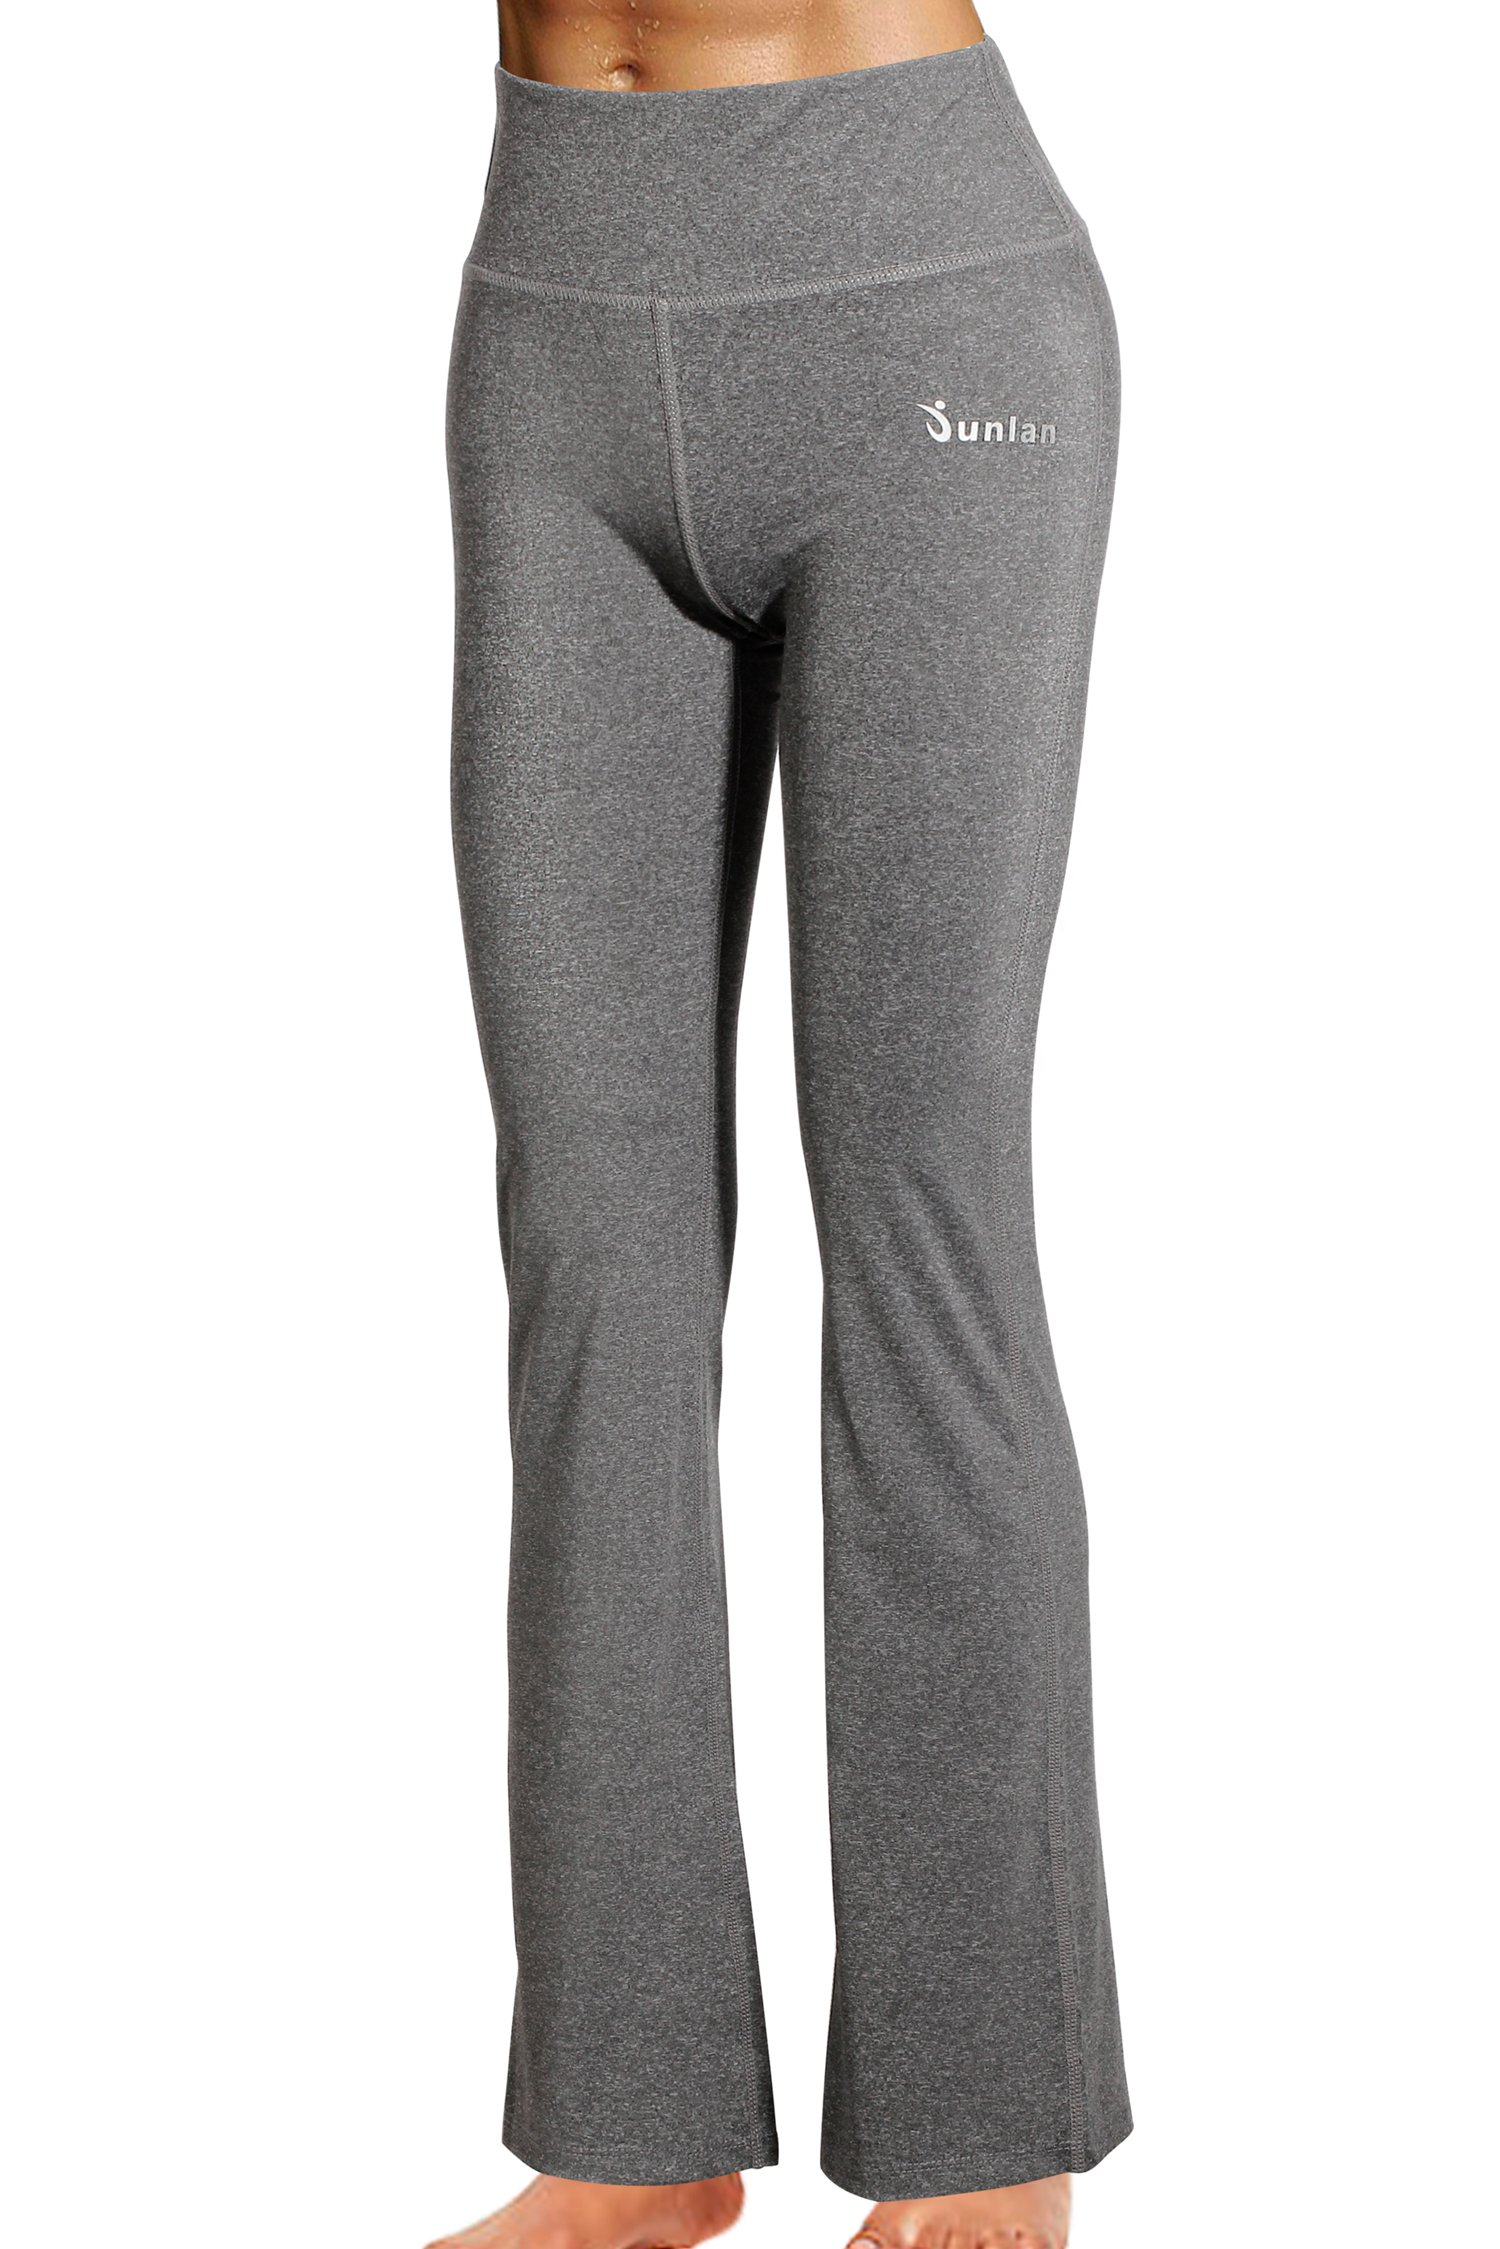 5261968353751 Women Yoga Pants Workout Leggings Running Clothes Fitness Boots Capri Wide  Leg Athletic Gym Clothing Stretch